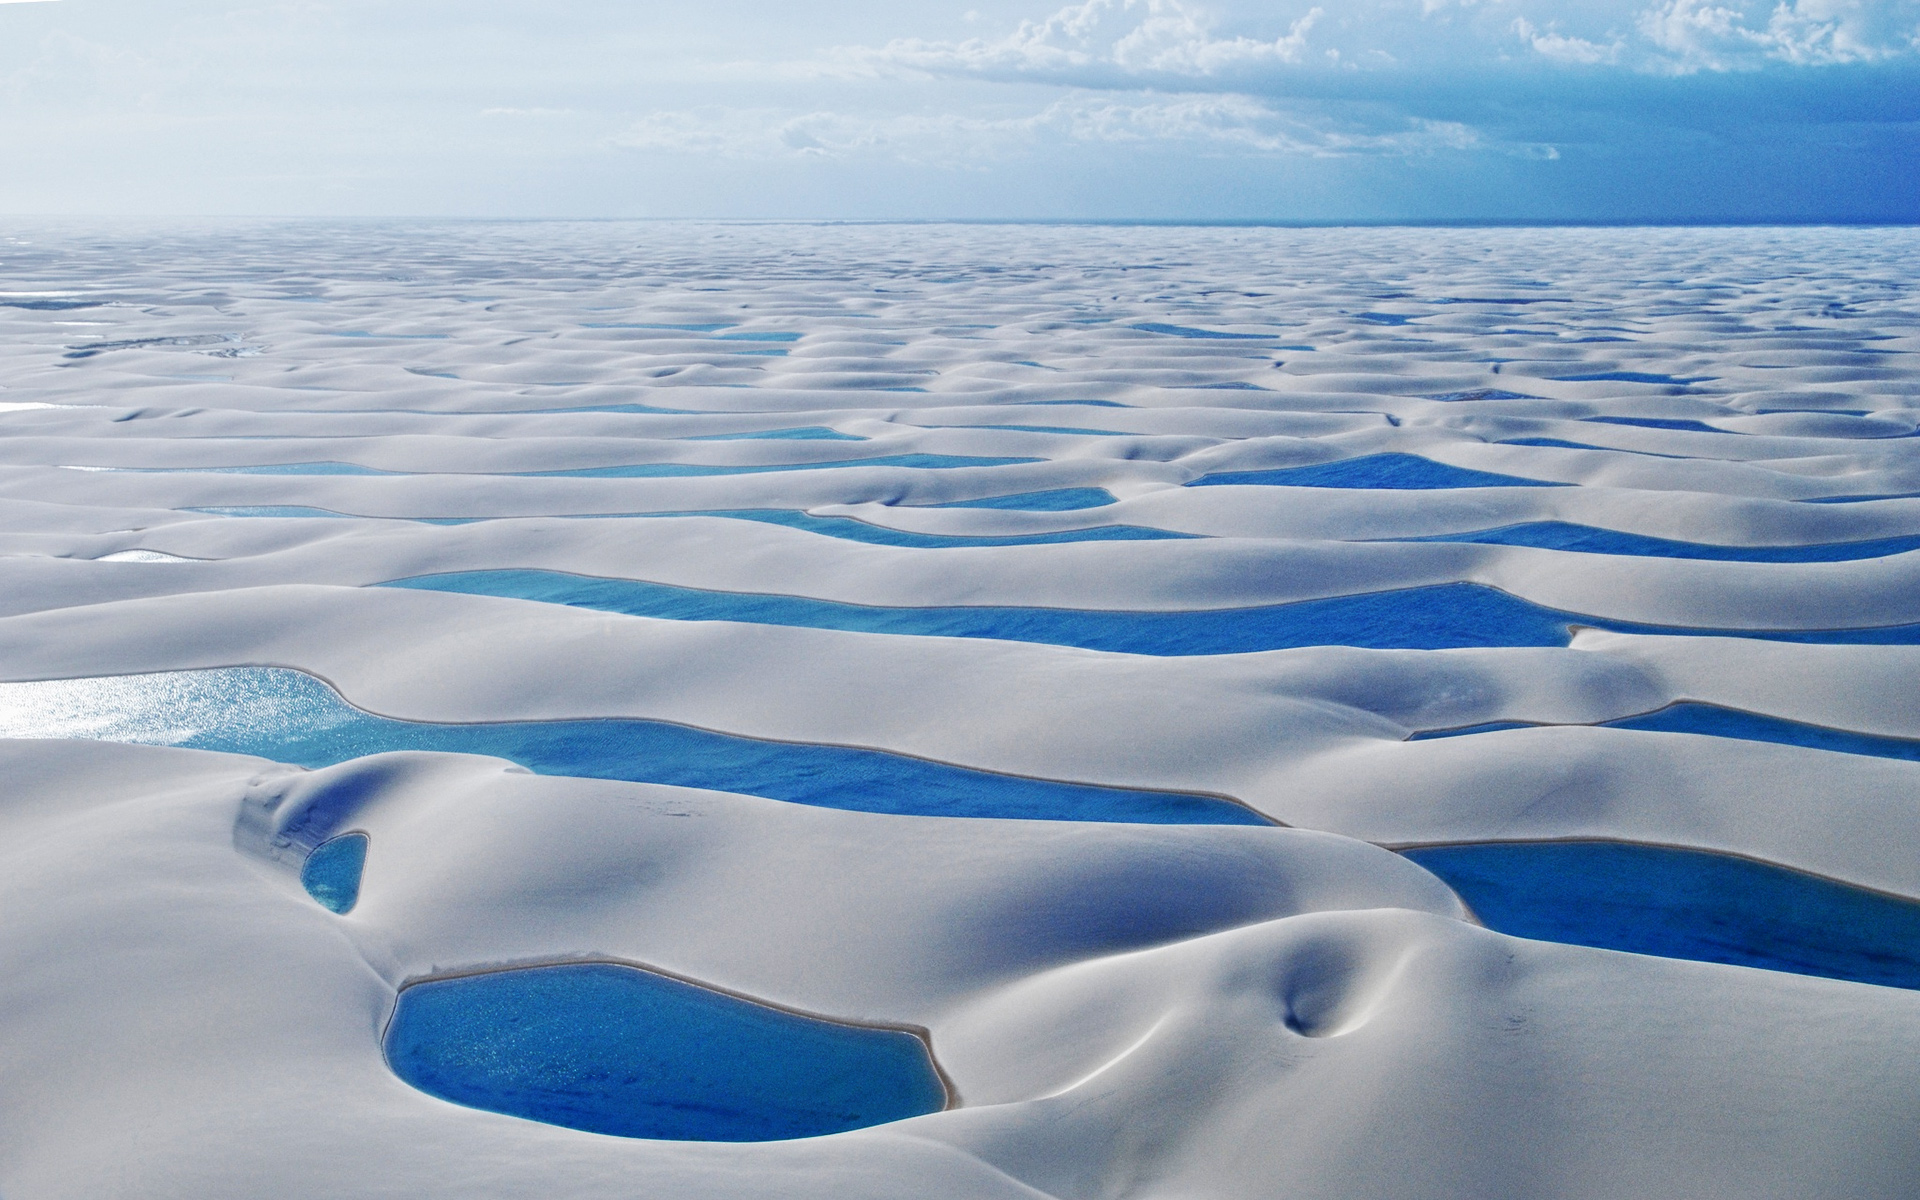 Lencois Maranhenses National Park Lagoons wallpapers 1920x1200